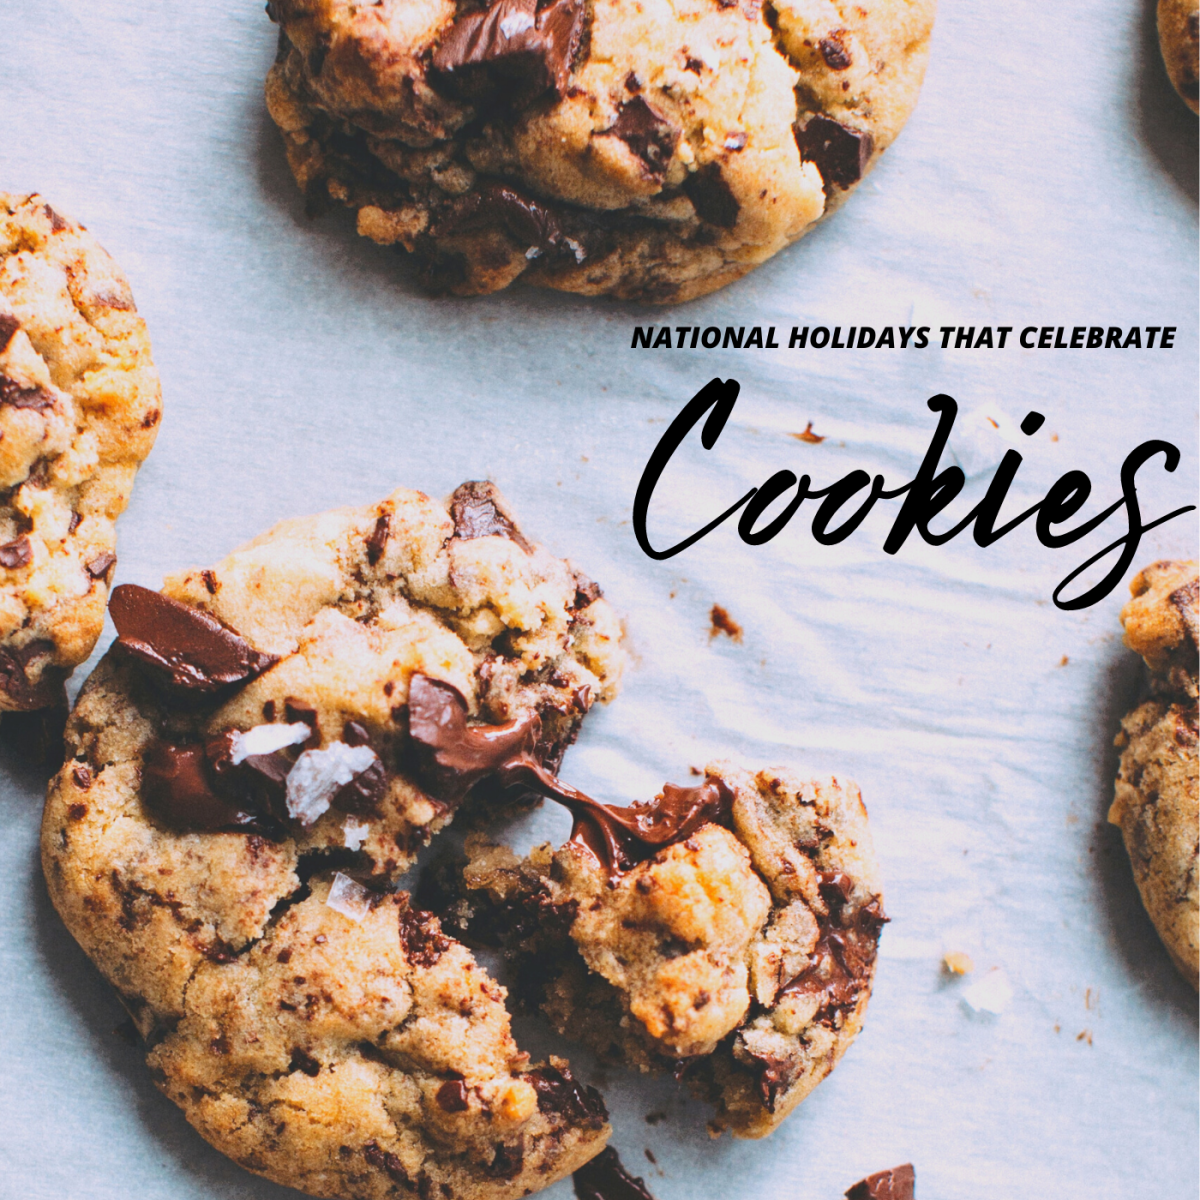 Can you believe there are at least 10 national holidays annually that celebrate cookies?